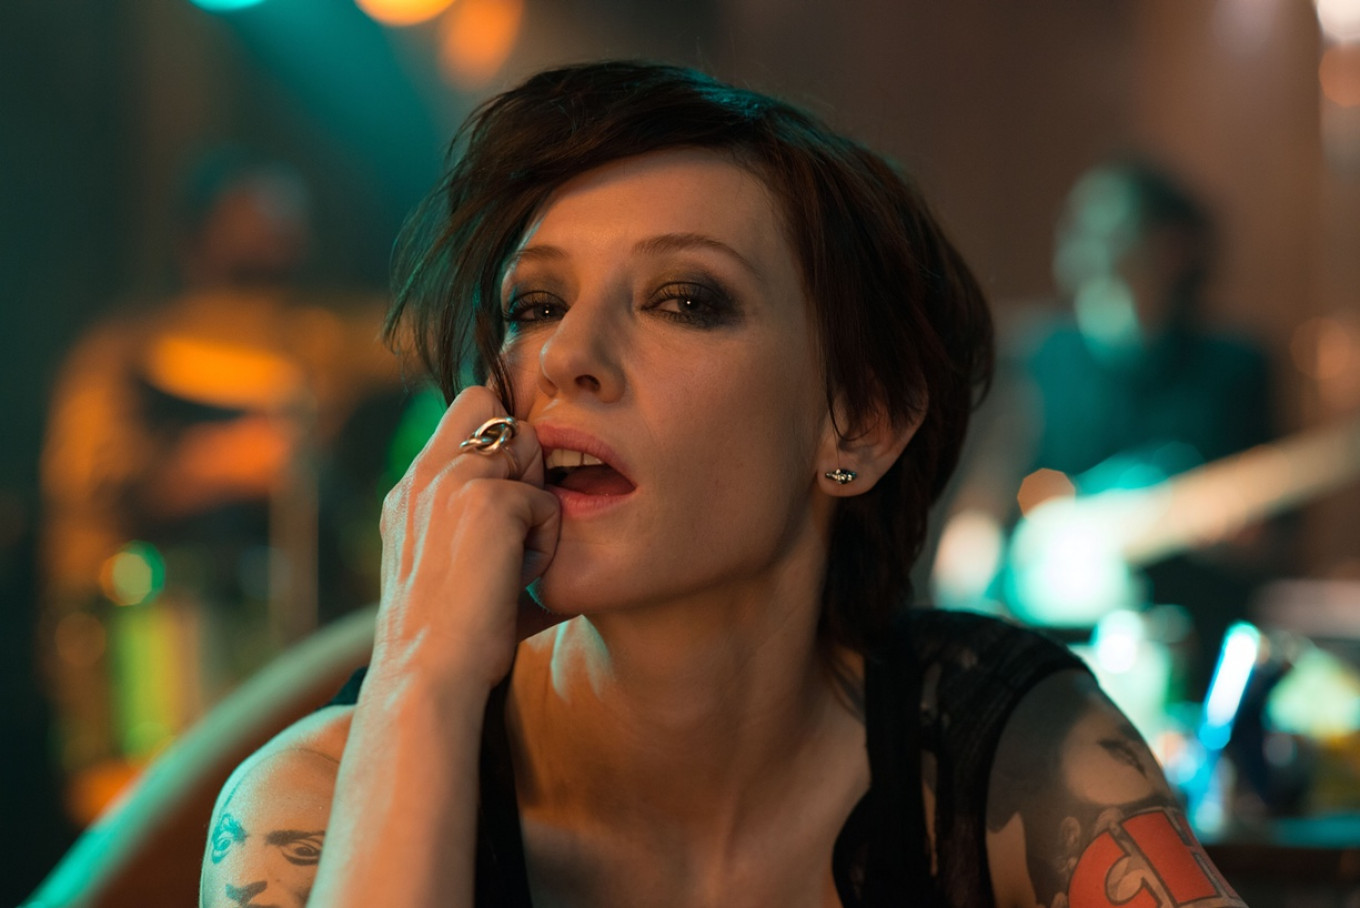 Cate Blanchett performs the main role in the innovative art film 'Manifesto.'				 				BEAT FILM FESTIVAL